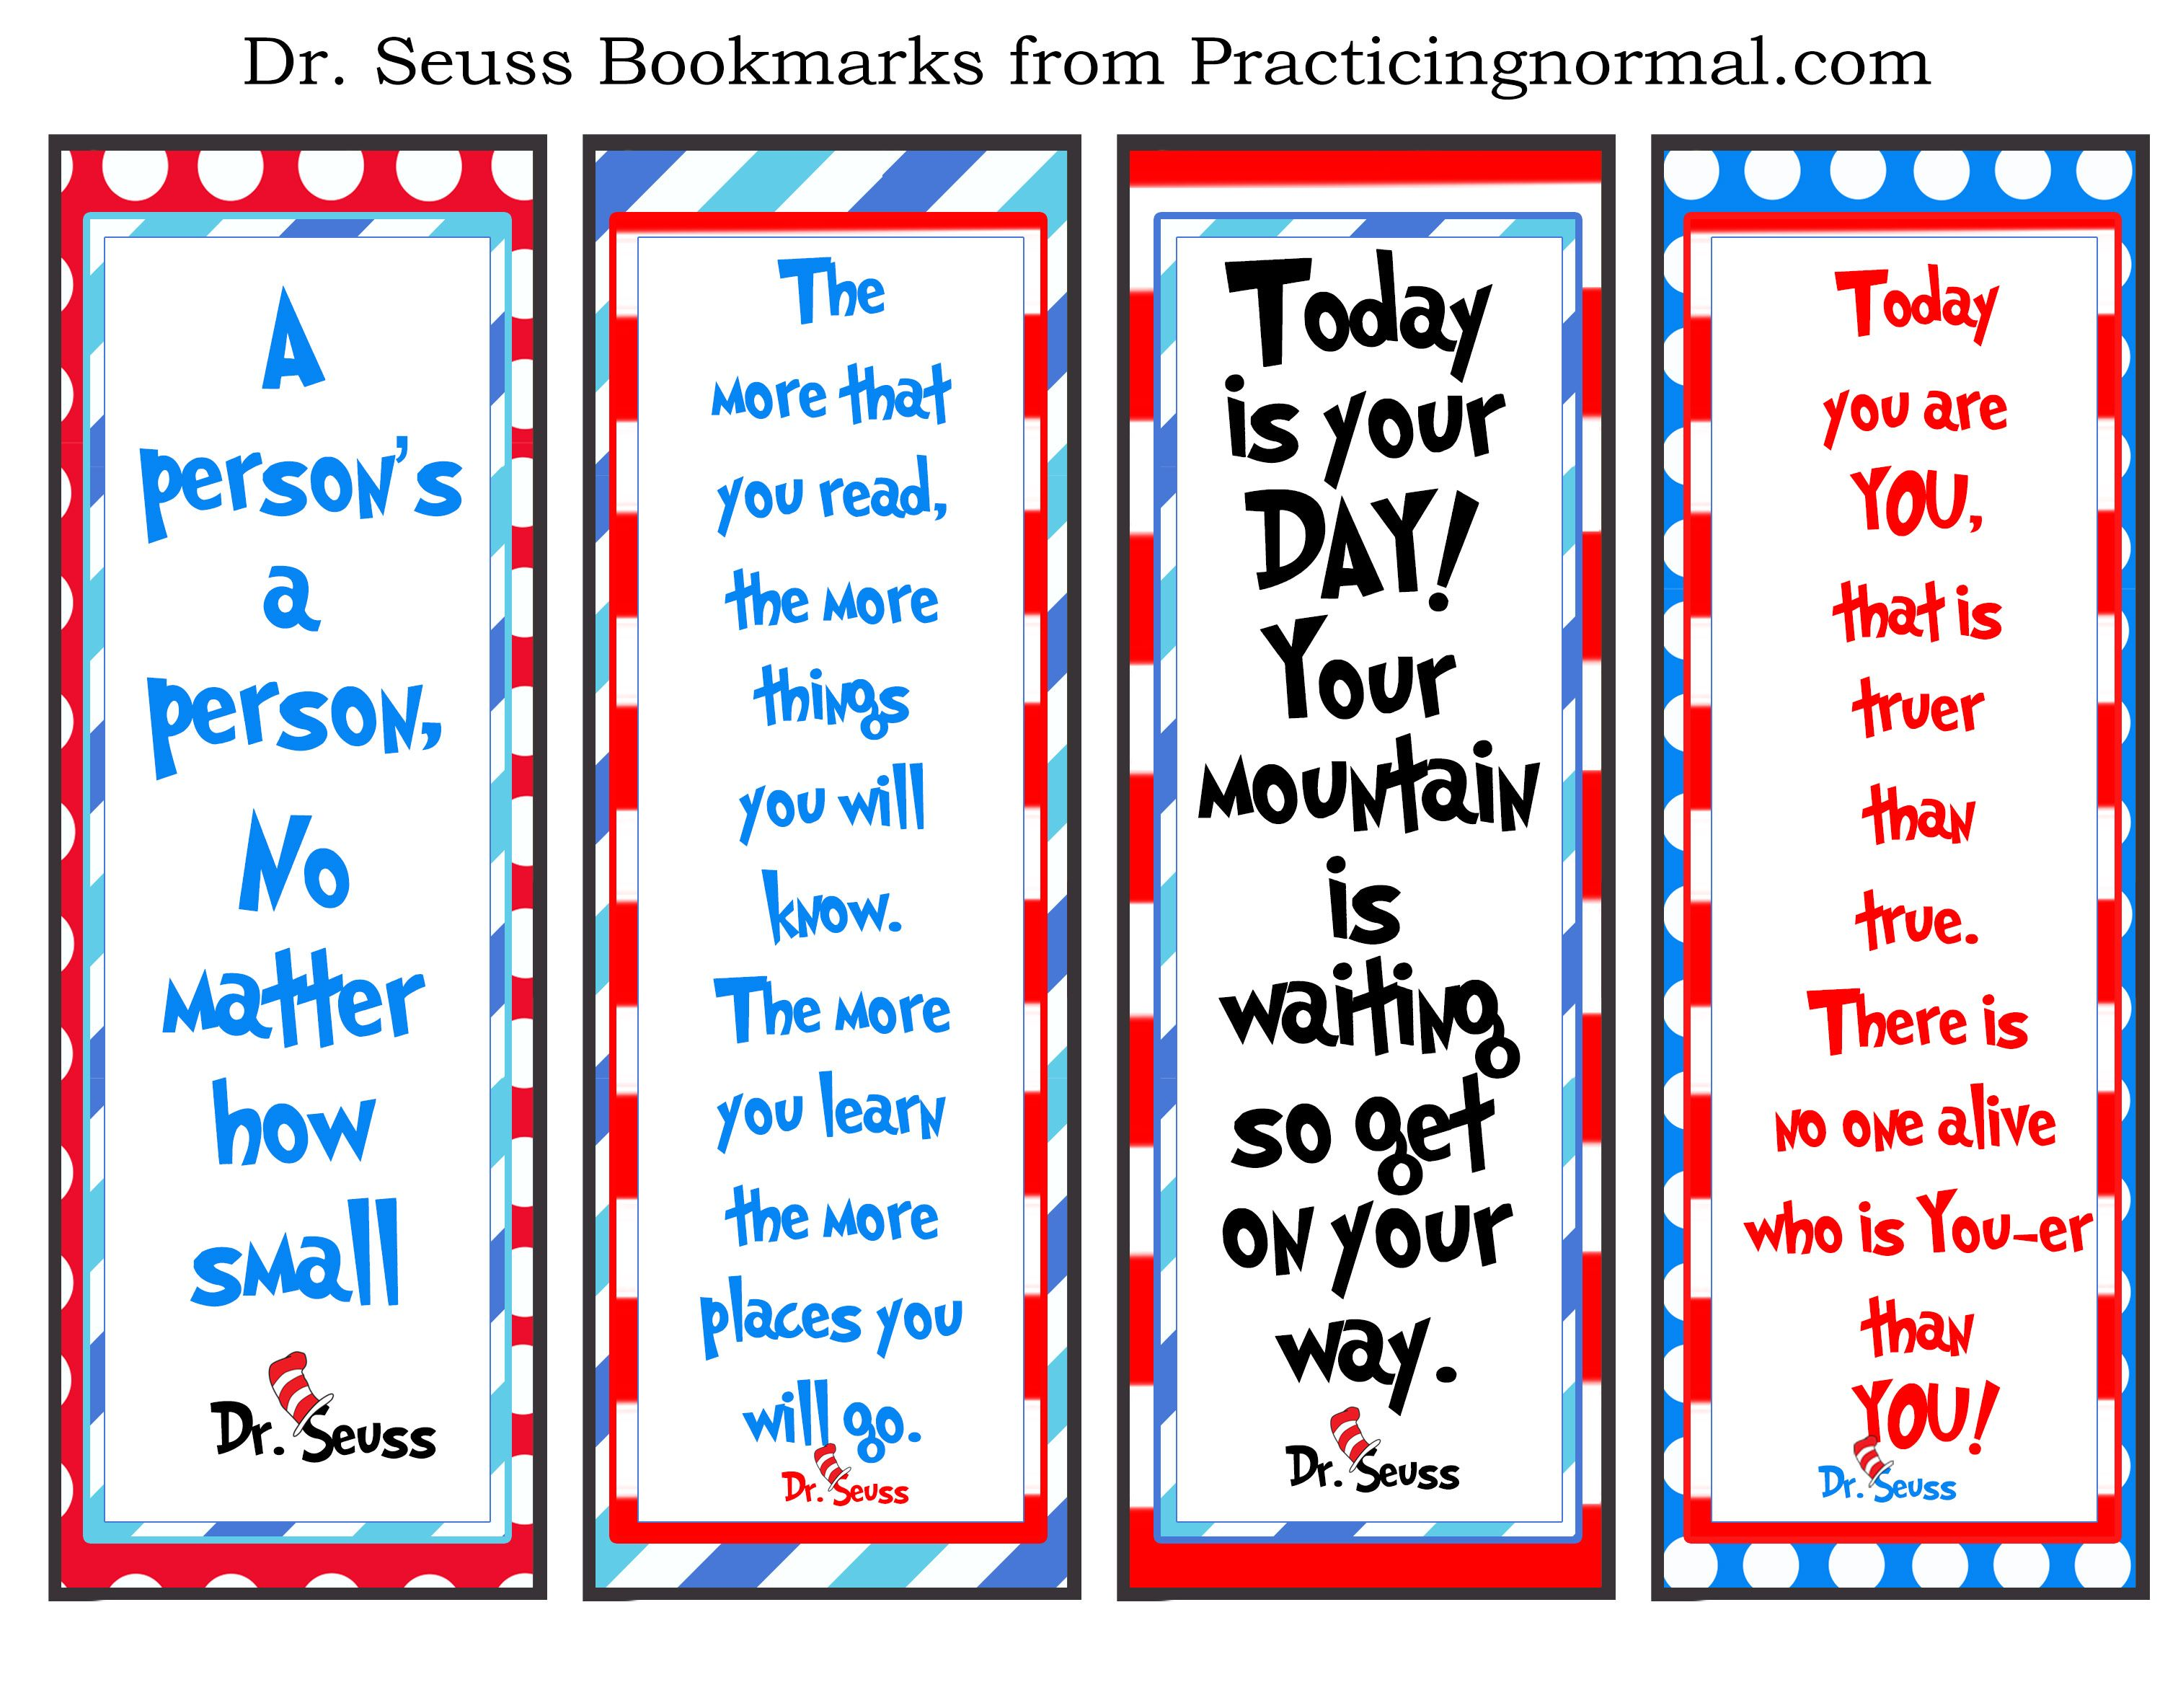 416160821792951320 on Preschool Graduation Quotes Dr Seuss 3